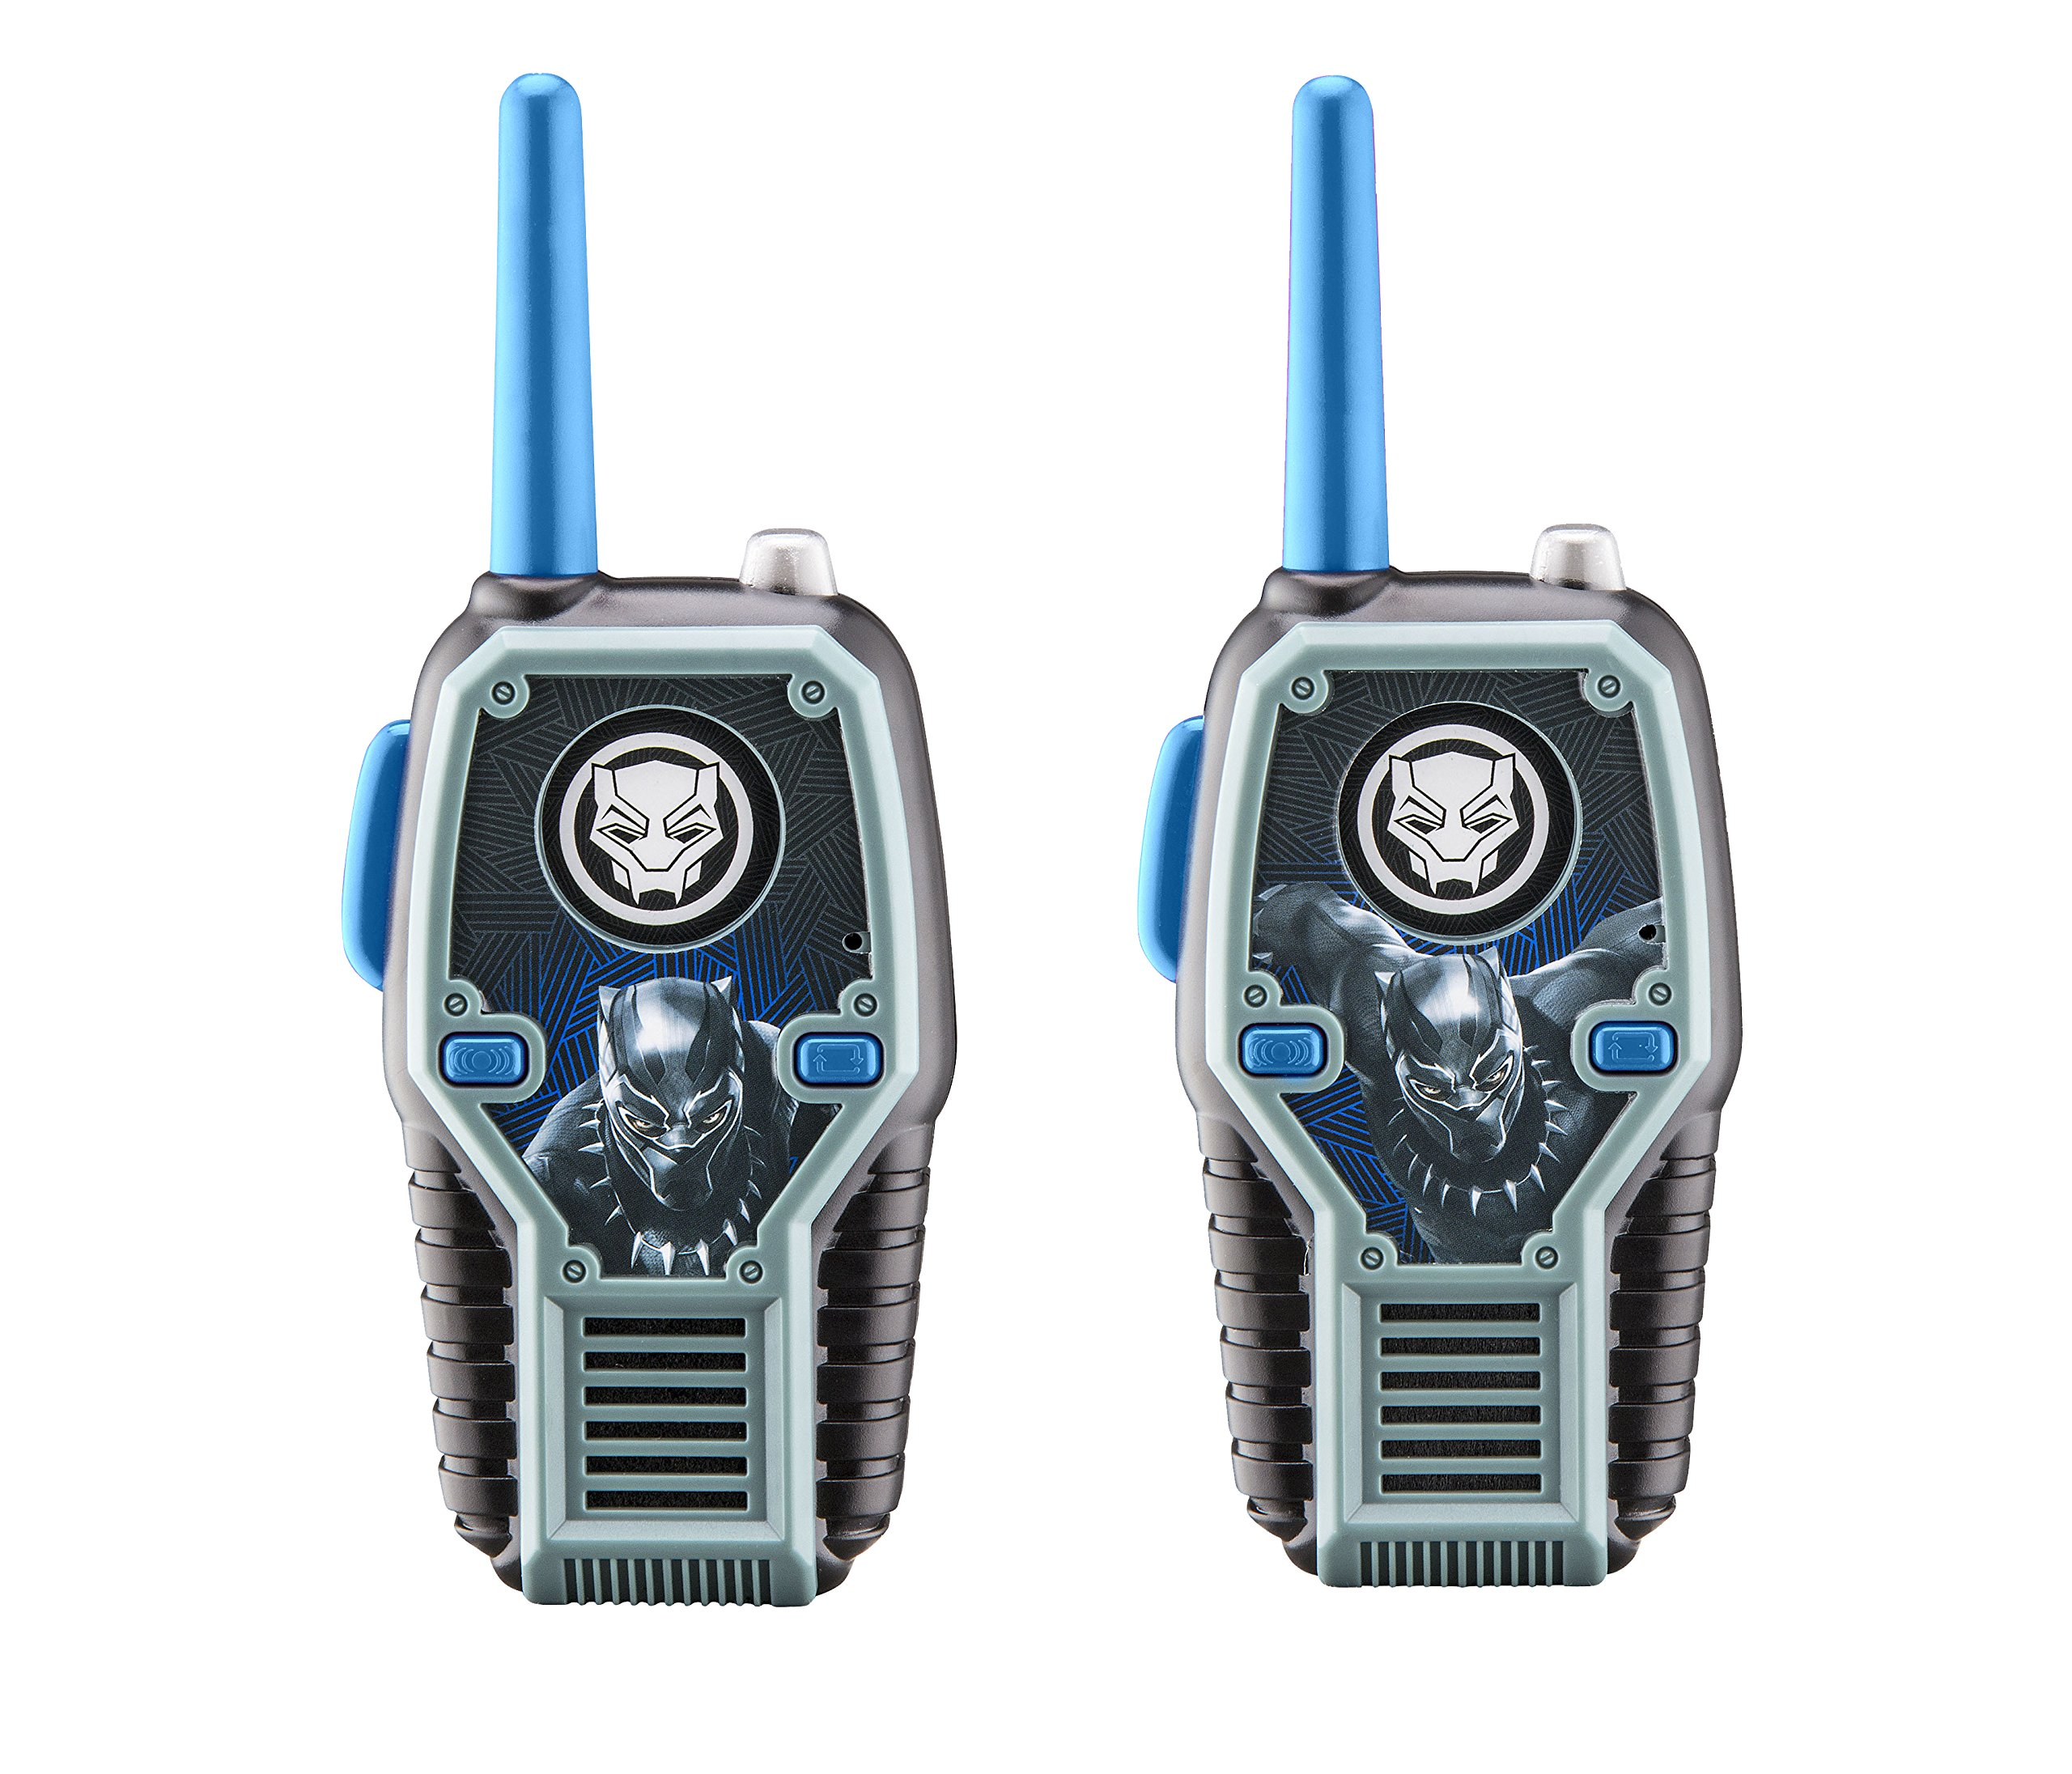 eKids Black Panther FRS Walkie Talkies with Lights & Sounds Kid Friendly Easy to Use by eKids (Image #1)